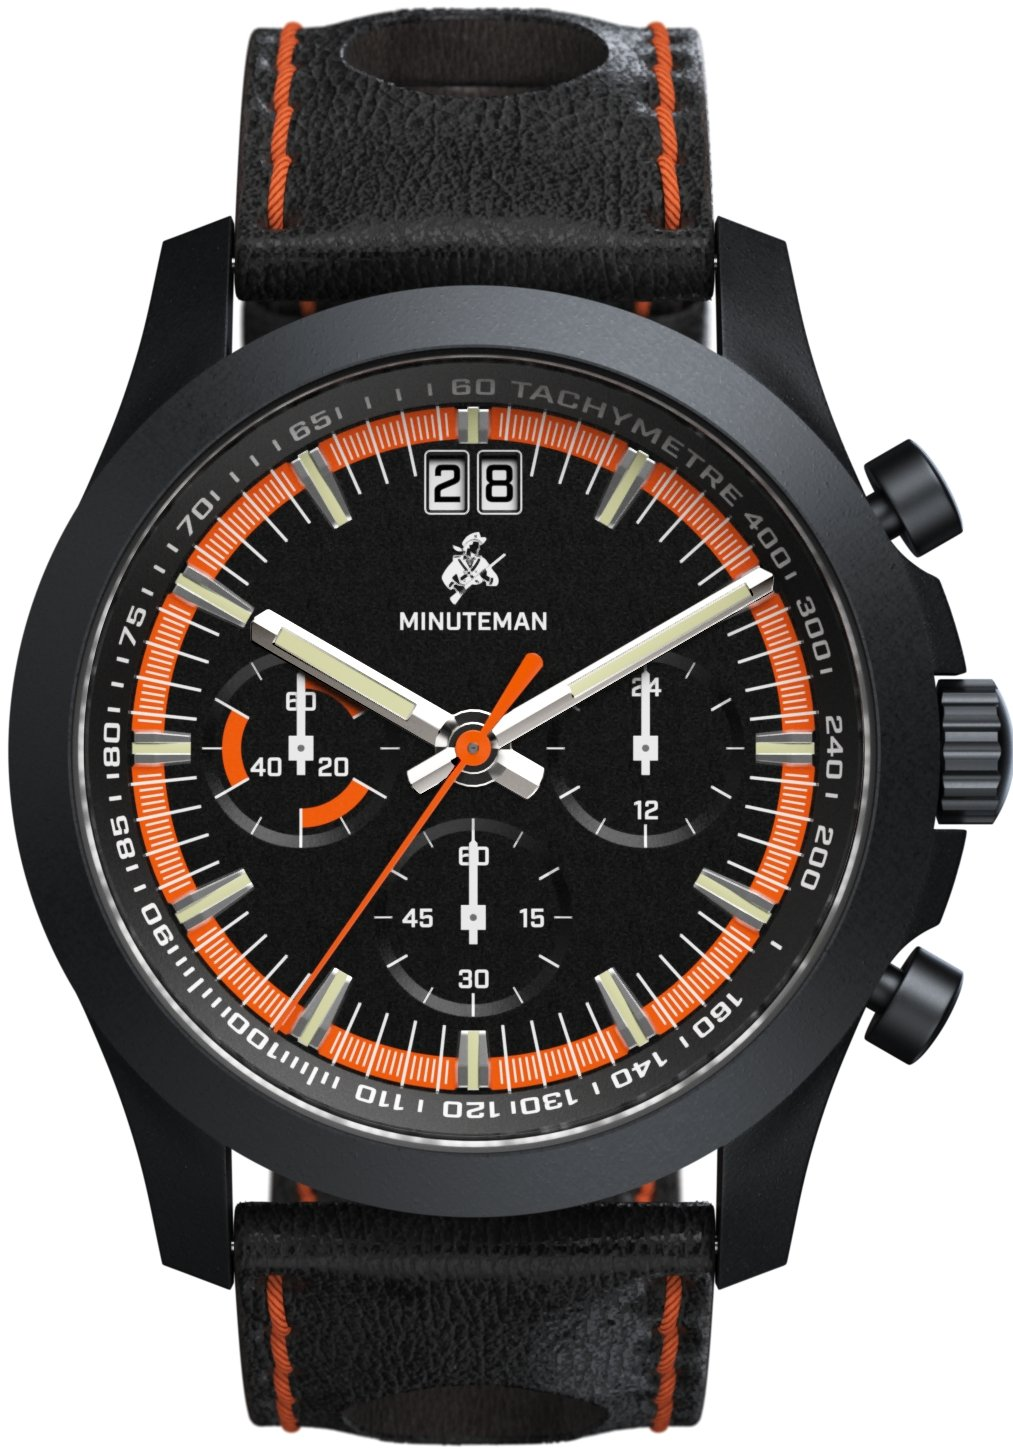 Minuteman Watches Launches New Salvo in Campaign for Veterans